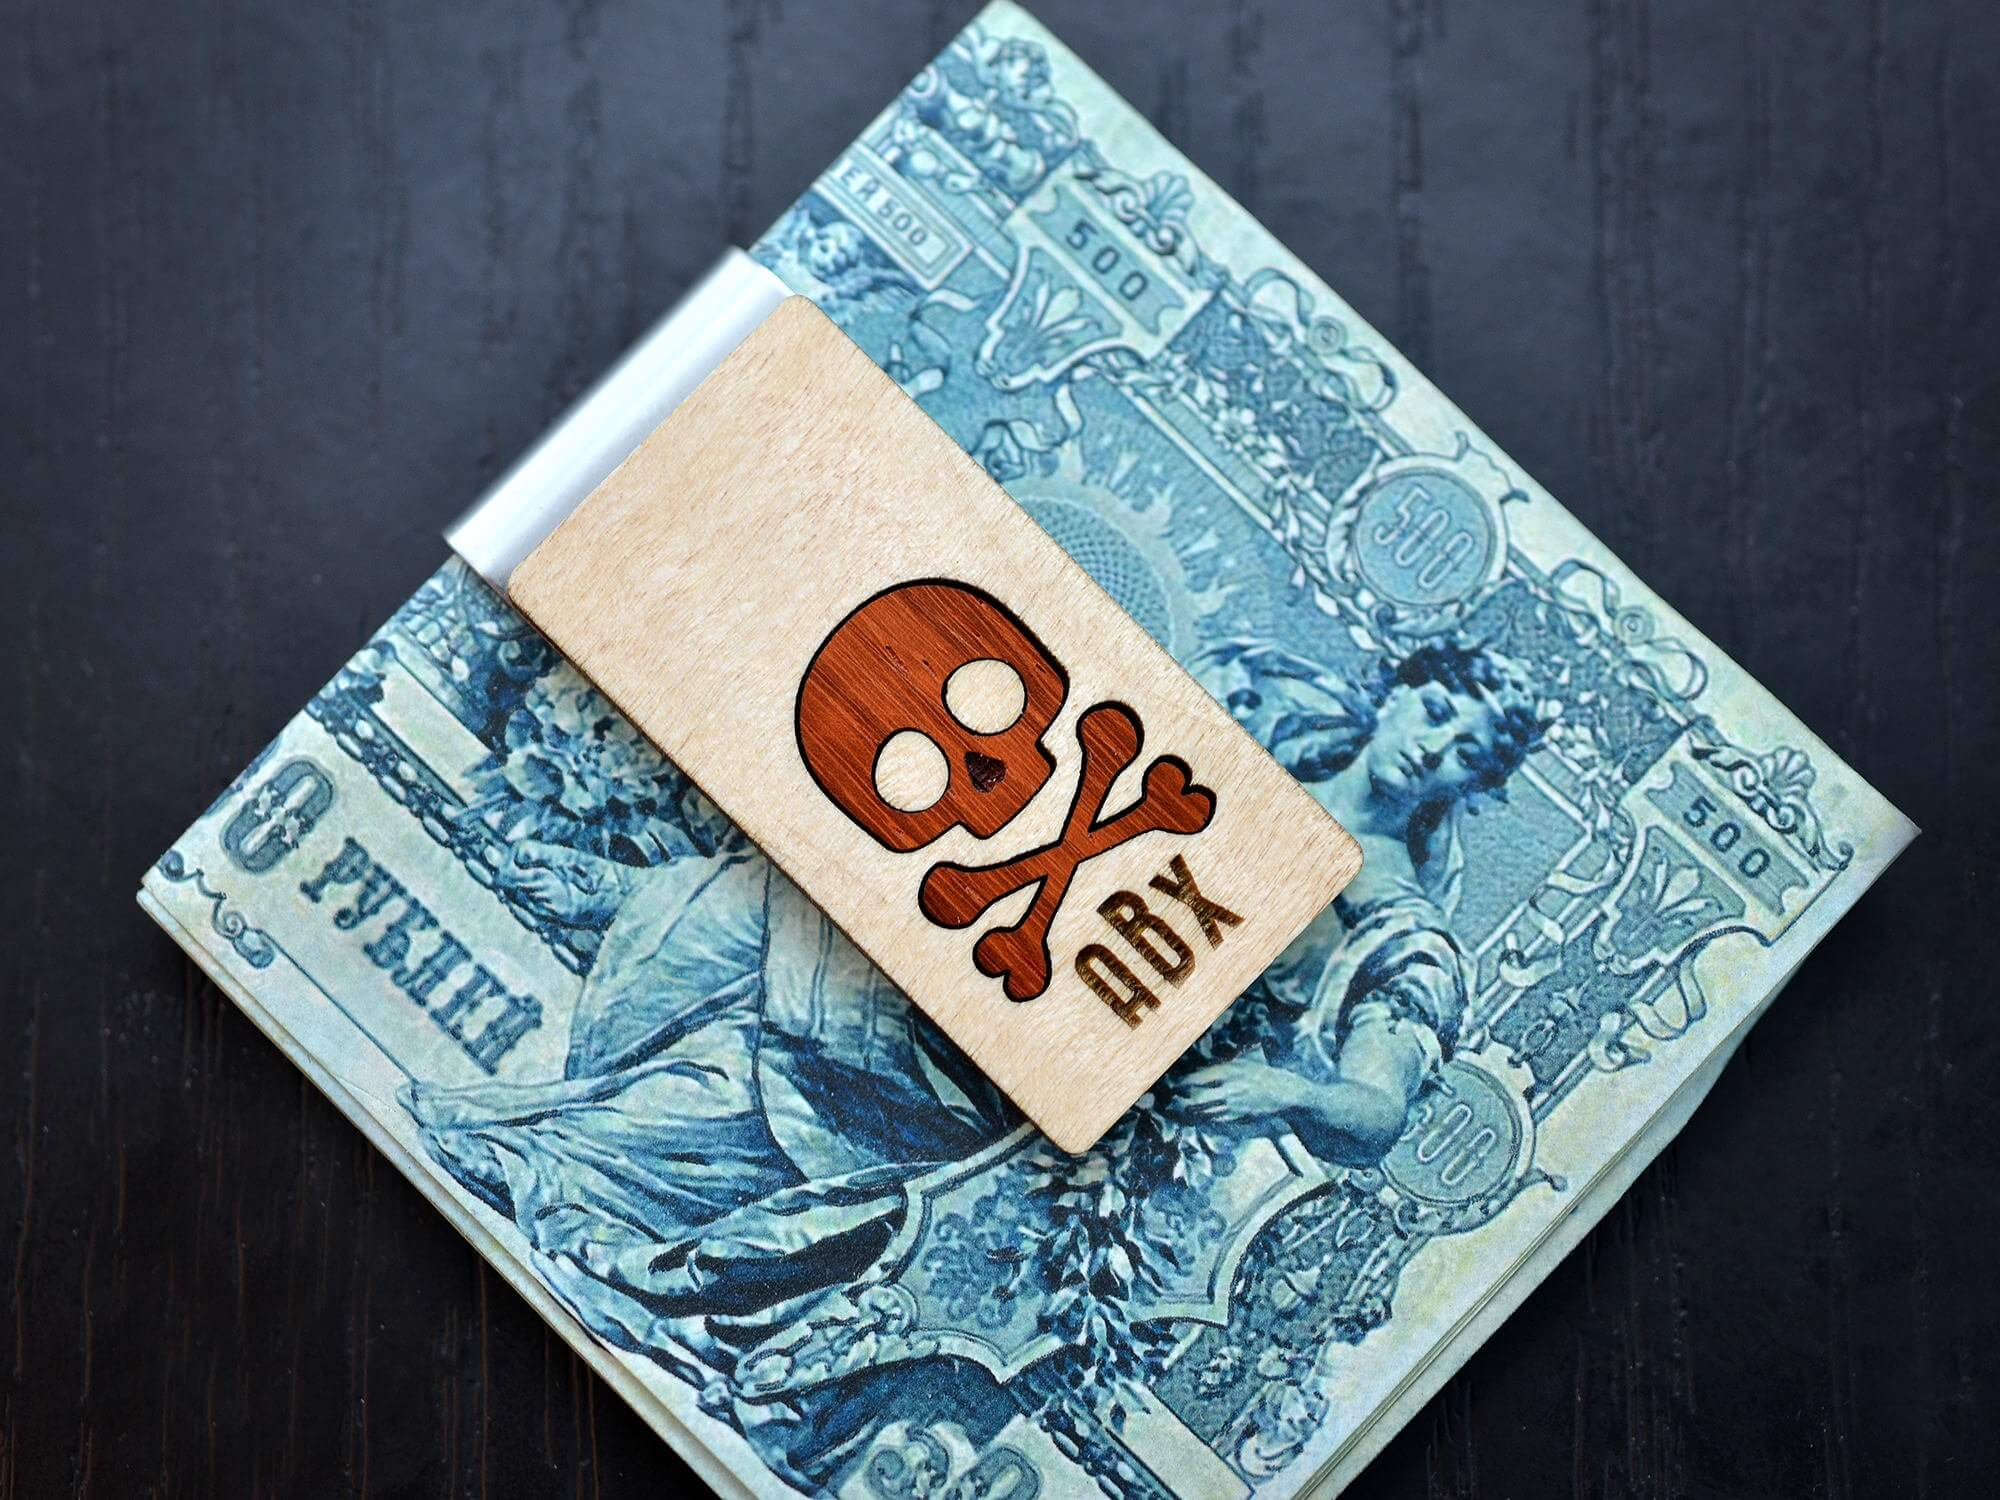 Personalized Money Clip, Skull inlaied wood Money clip, Groomsmen Money clips, Groomsmen Gift, Birthday, Anniversary Gift